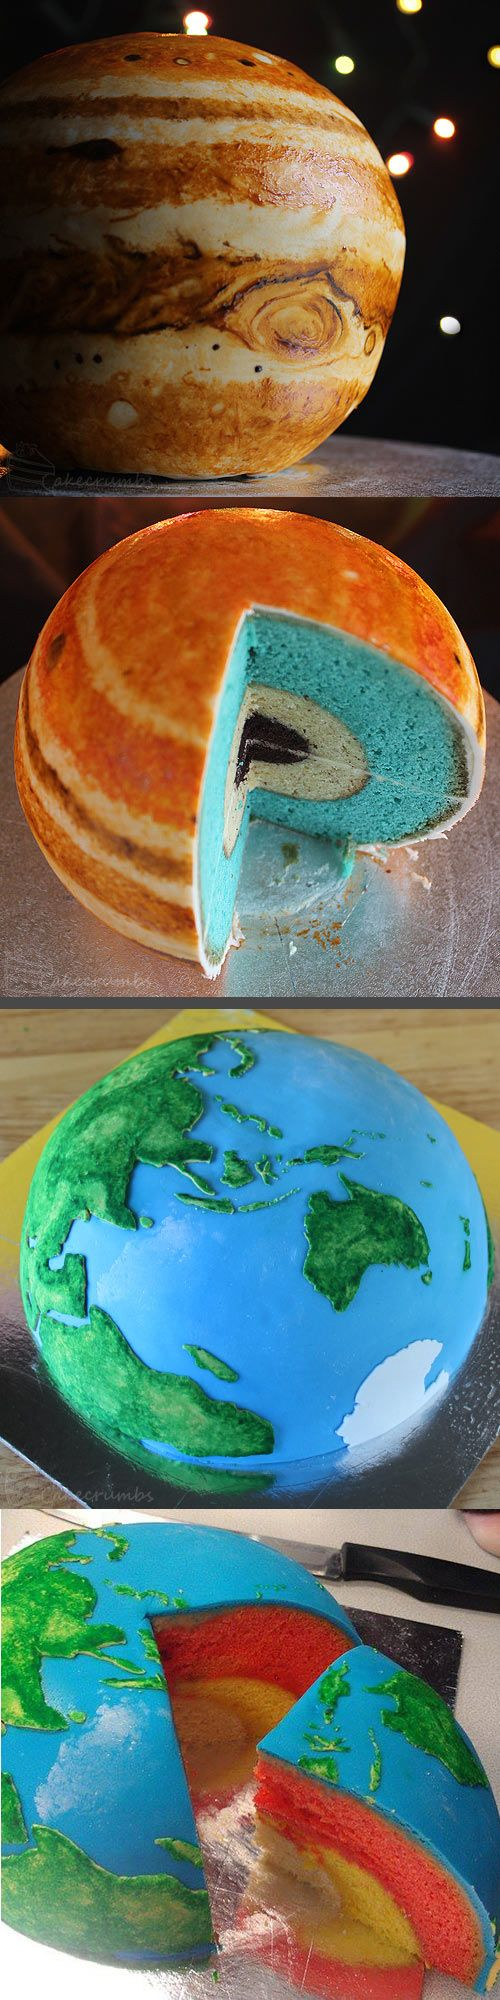 Planet cakes... Well that's the coolest thing ever